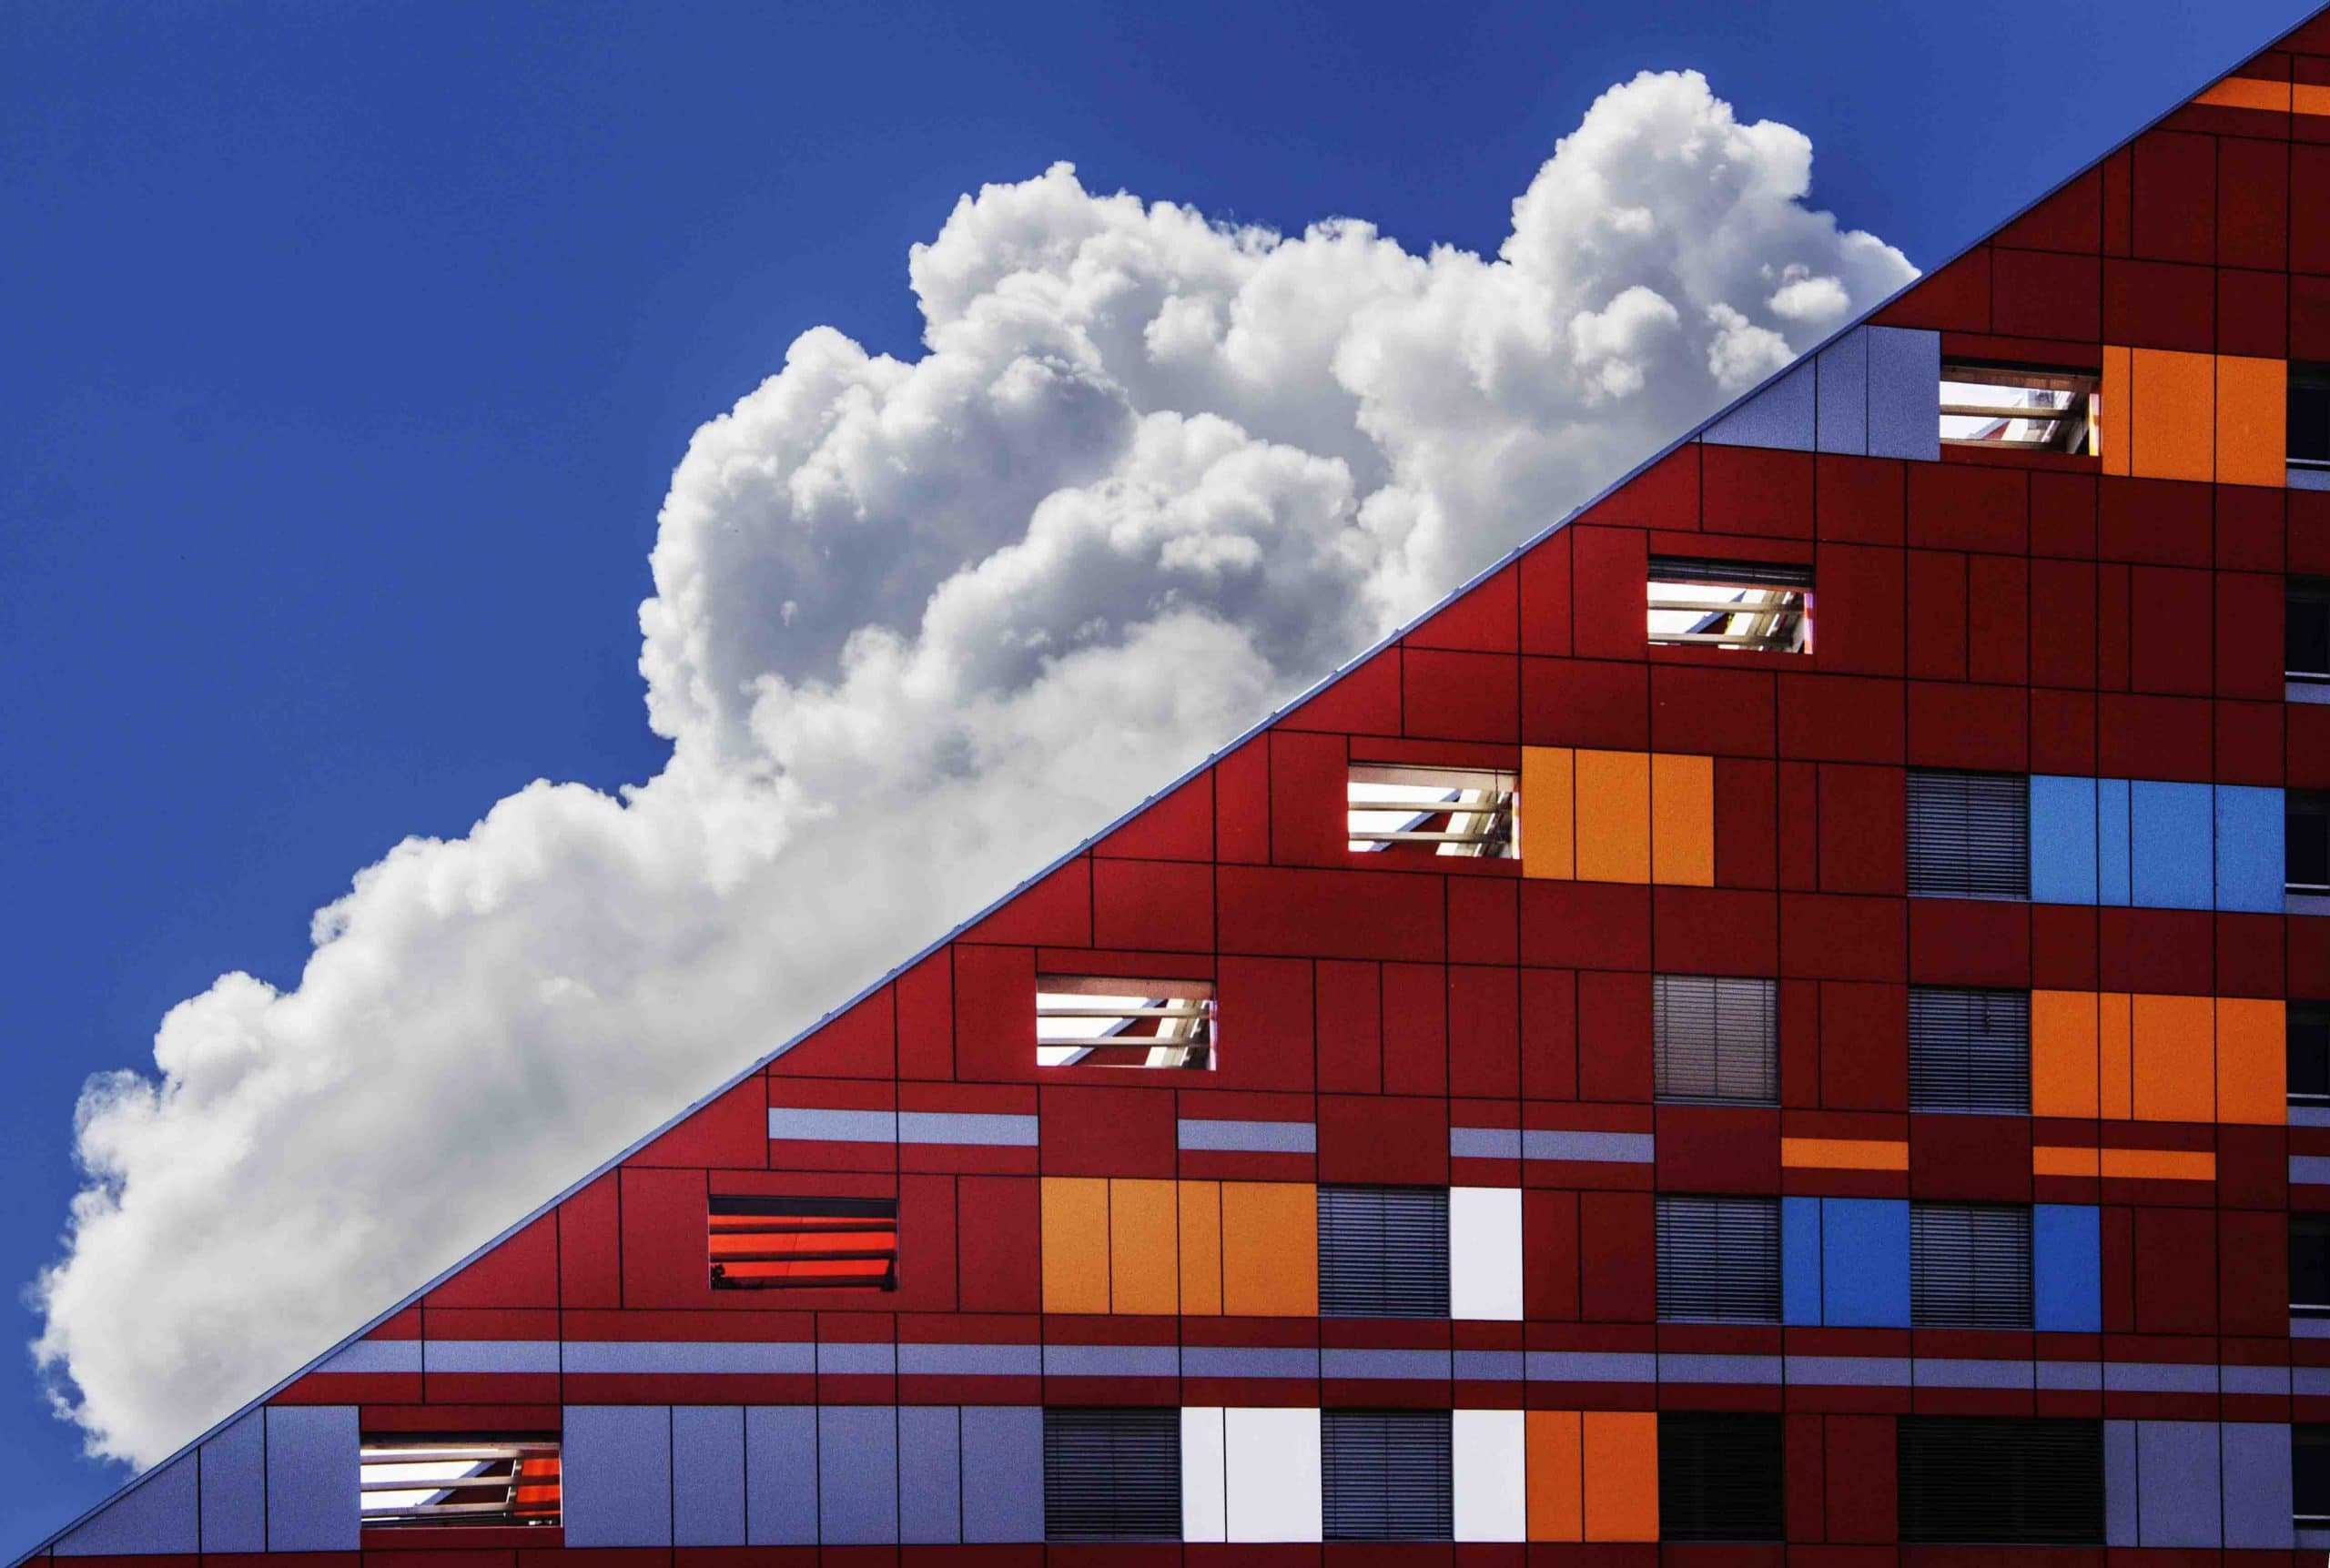 architecture building clouds